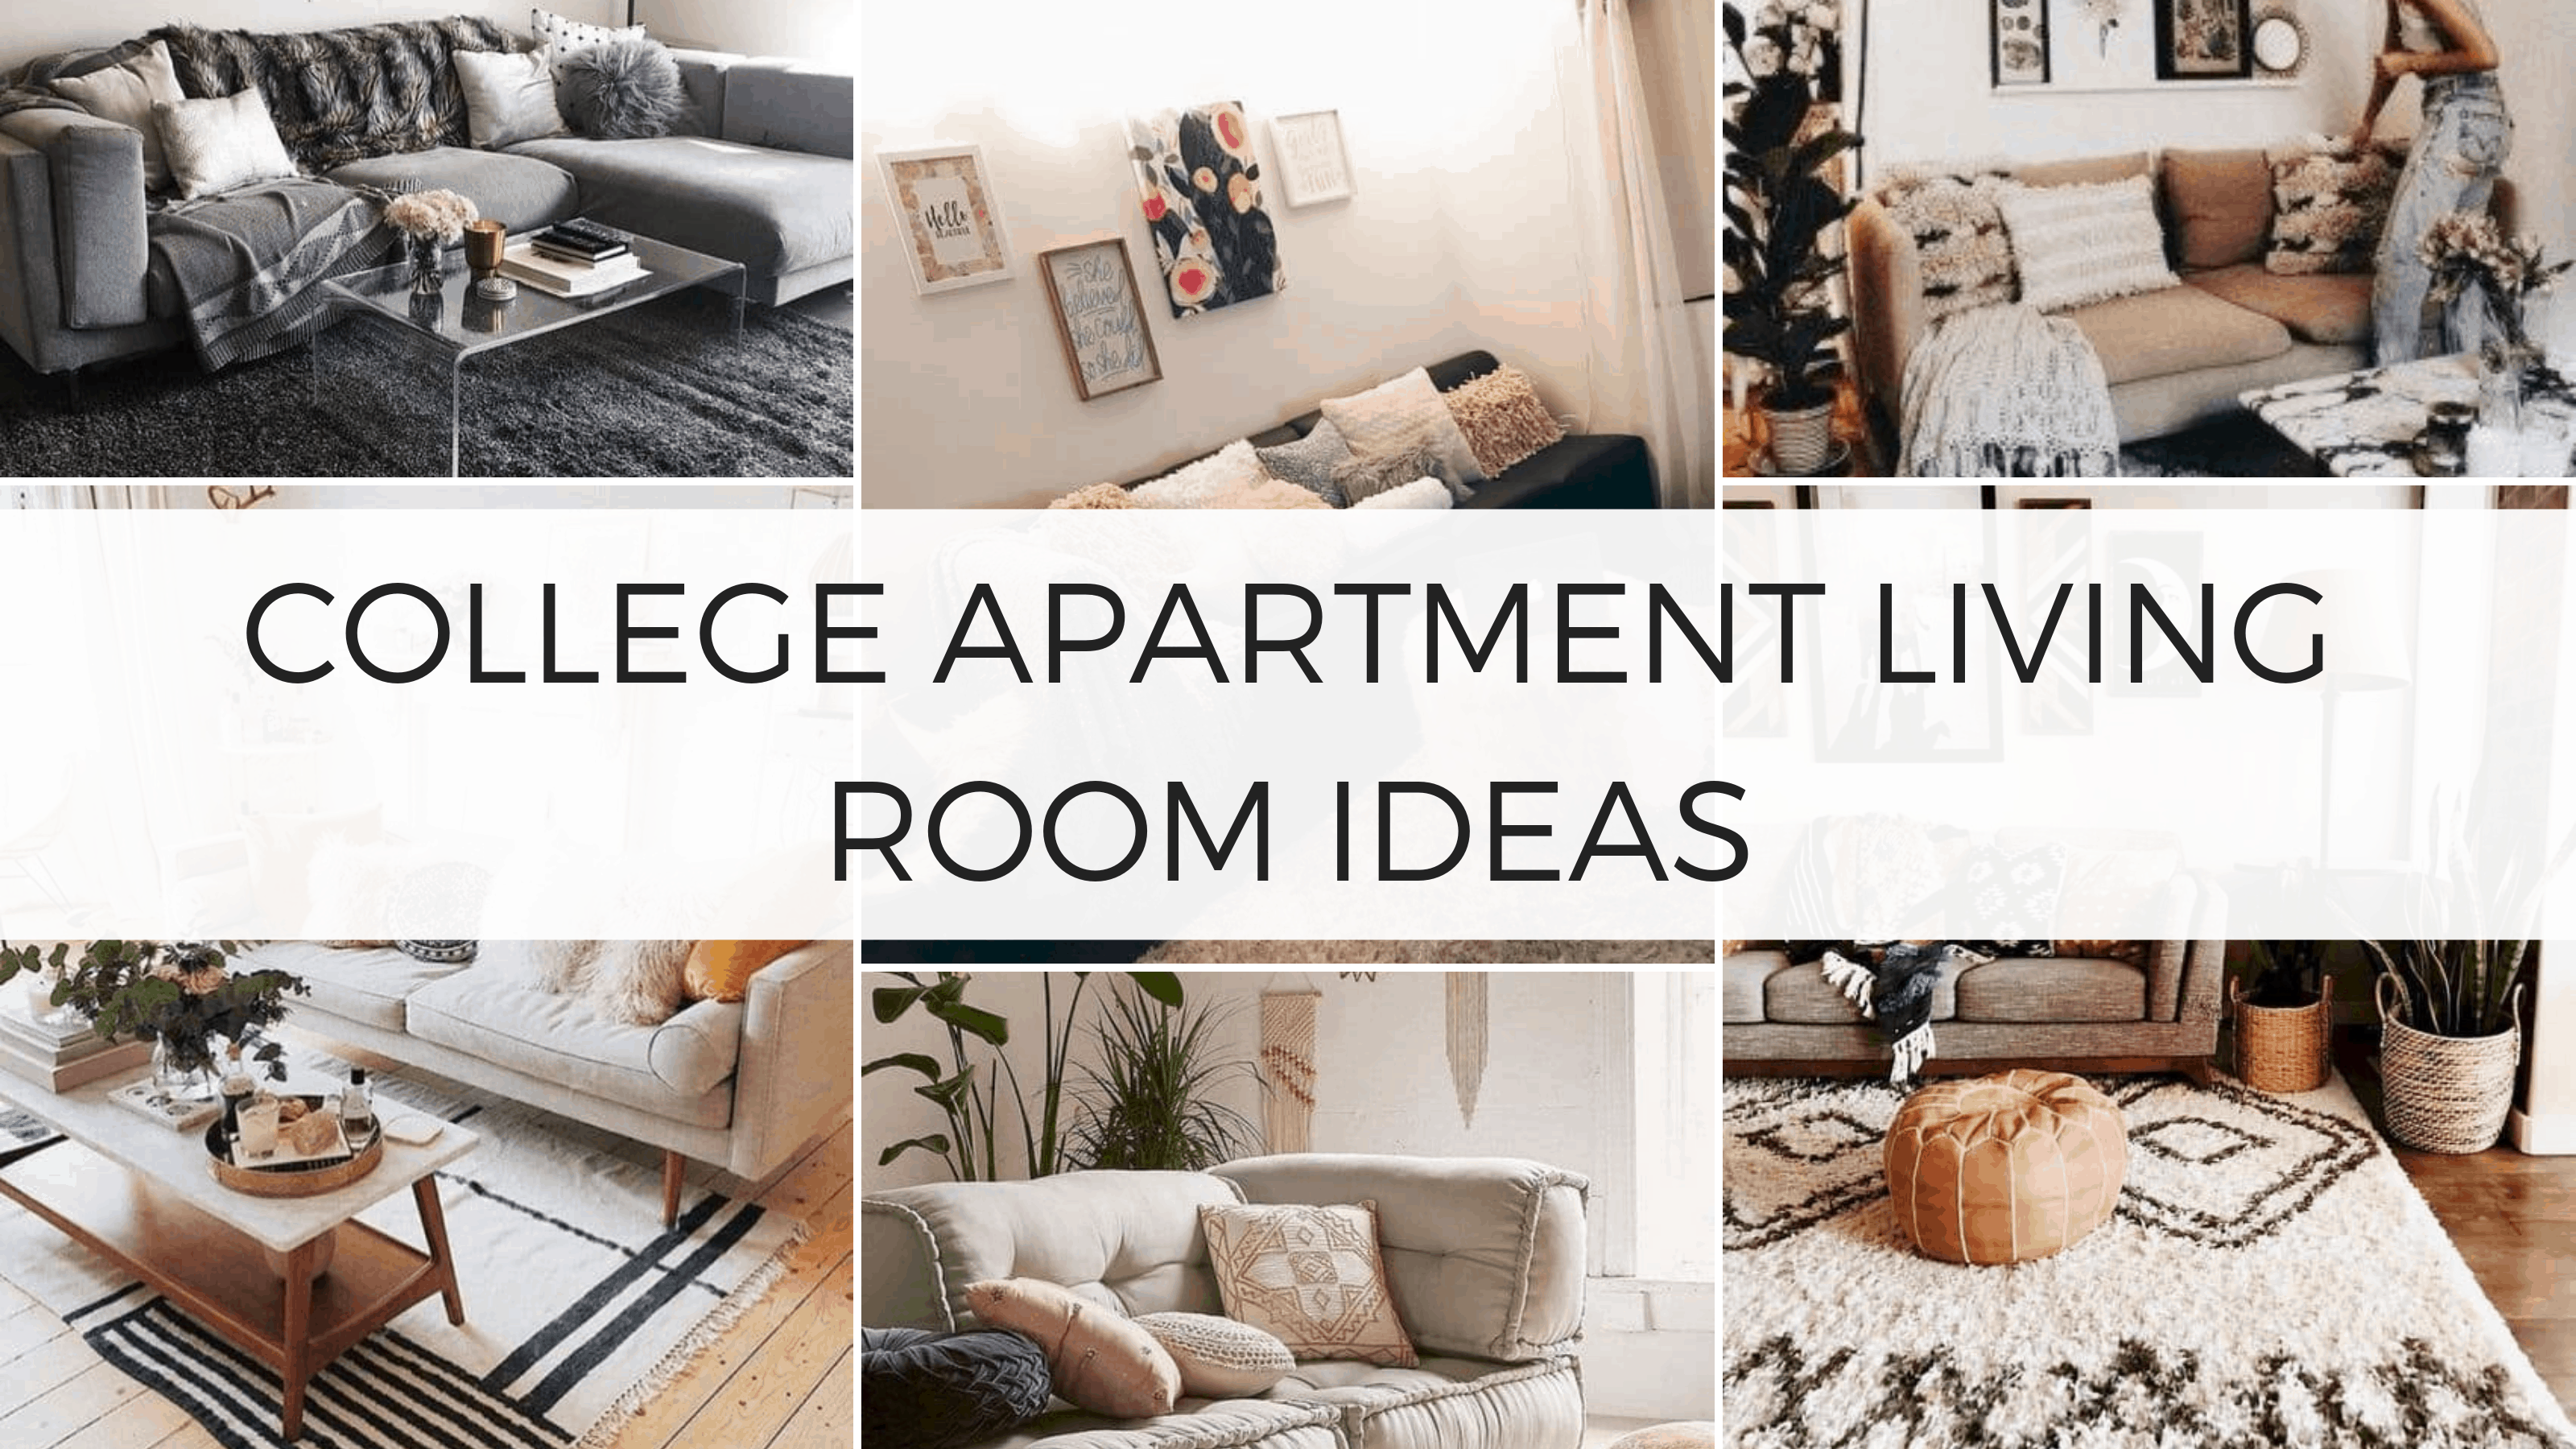 26 Insanely Cute College Apartment Living Room Ideas To Copy By